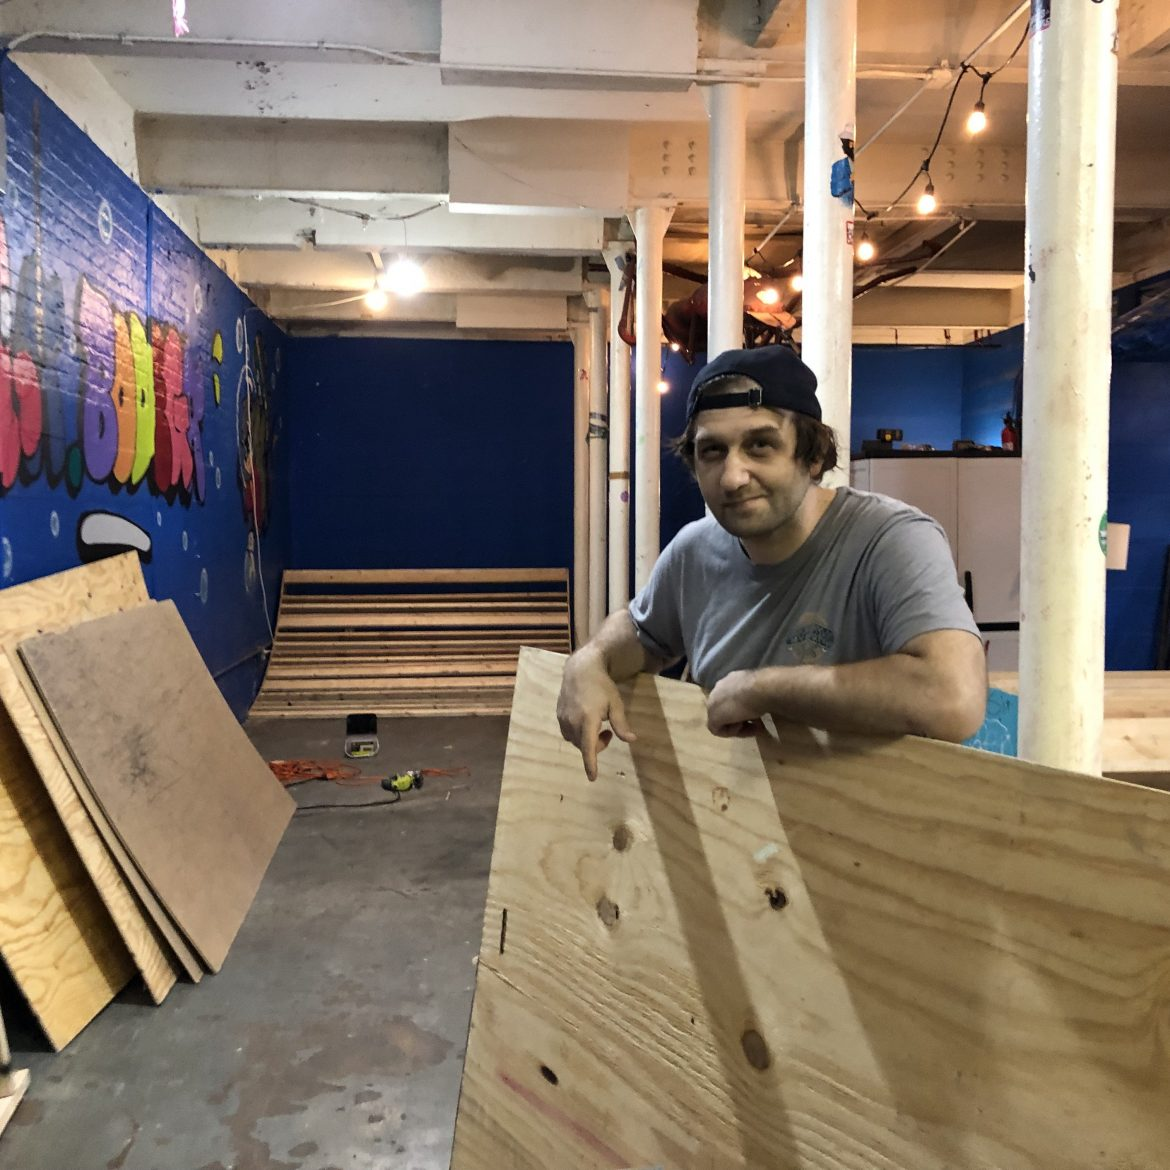 Rich posing with plywood